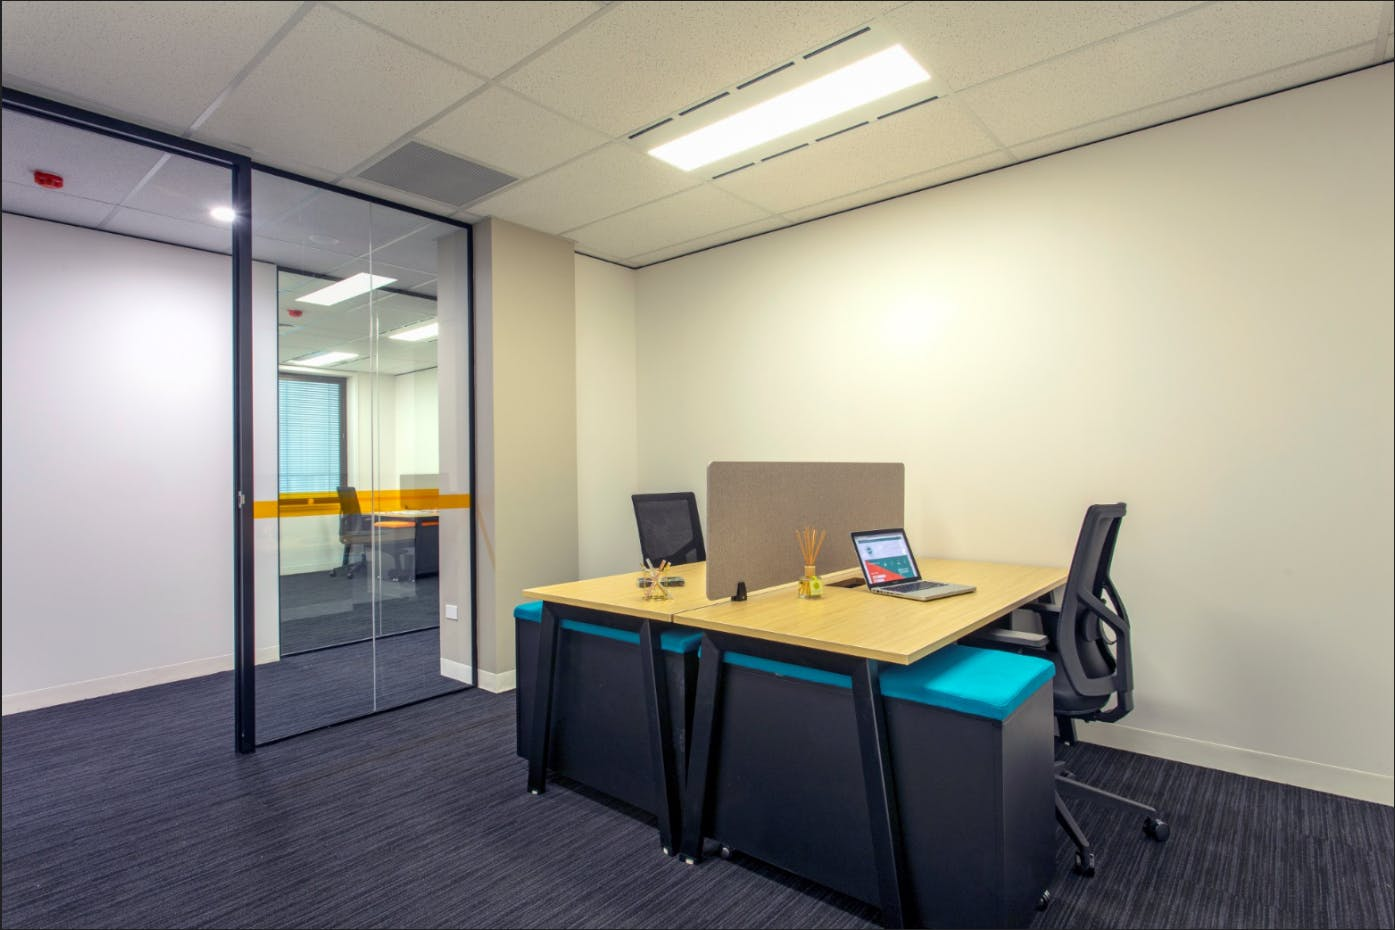 Suite 9, serviced office at Spot Co-Working, image 1